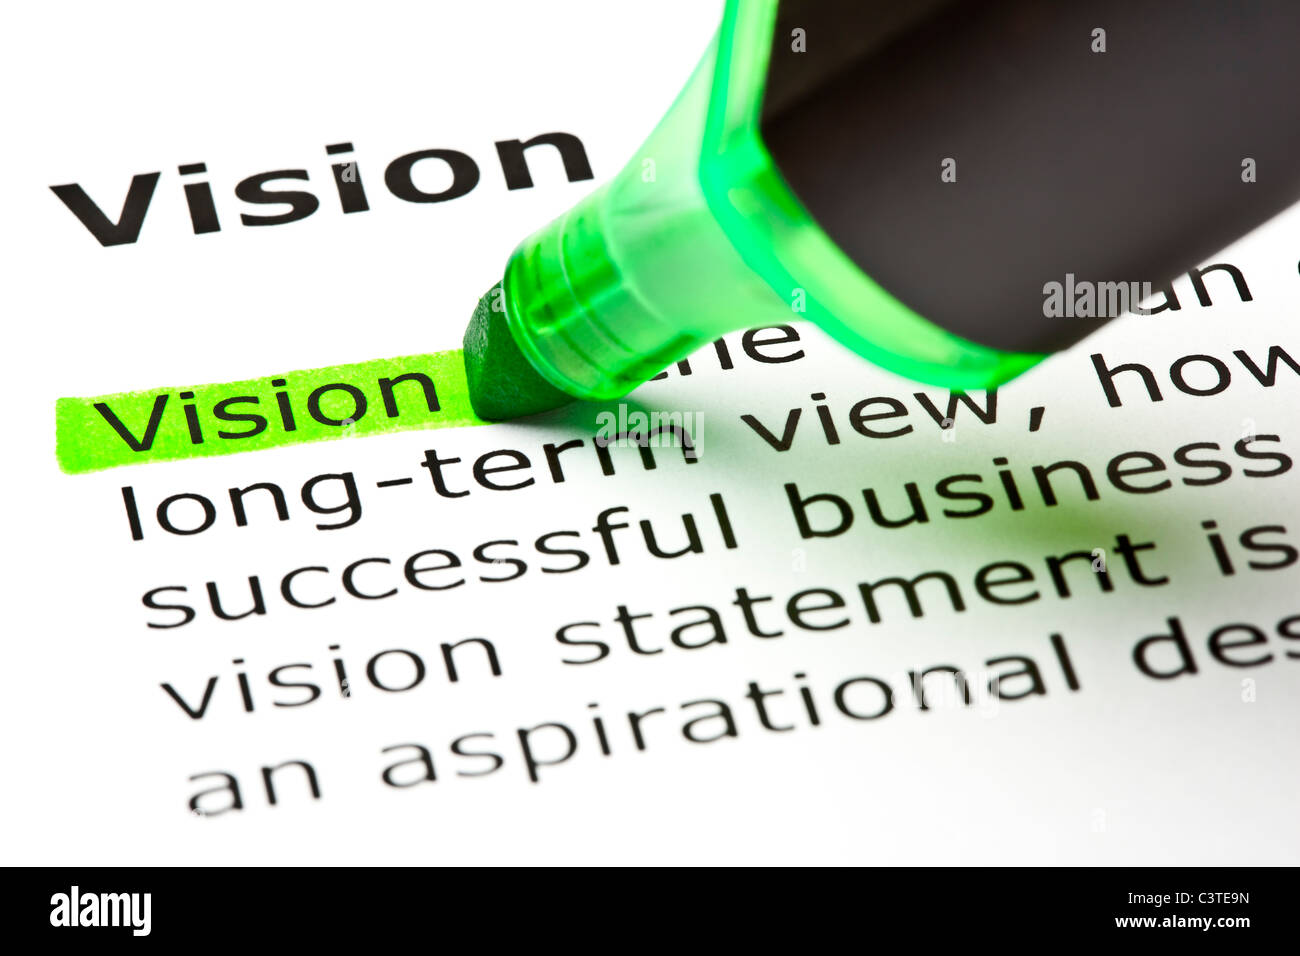 The word 'Vision' highlighted in green with felt tip pen - Stock Image